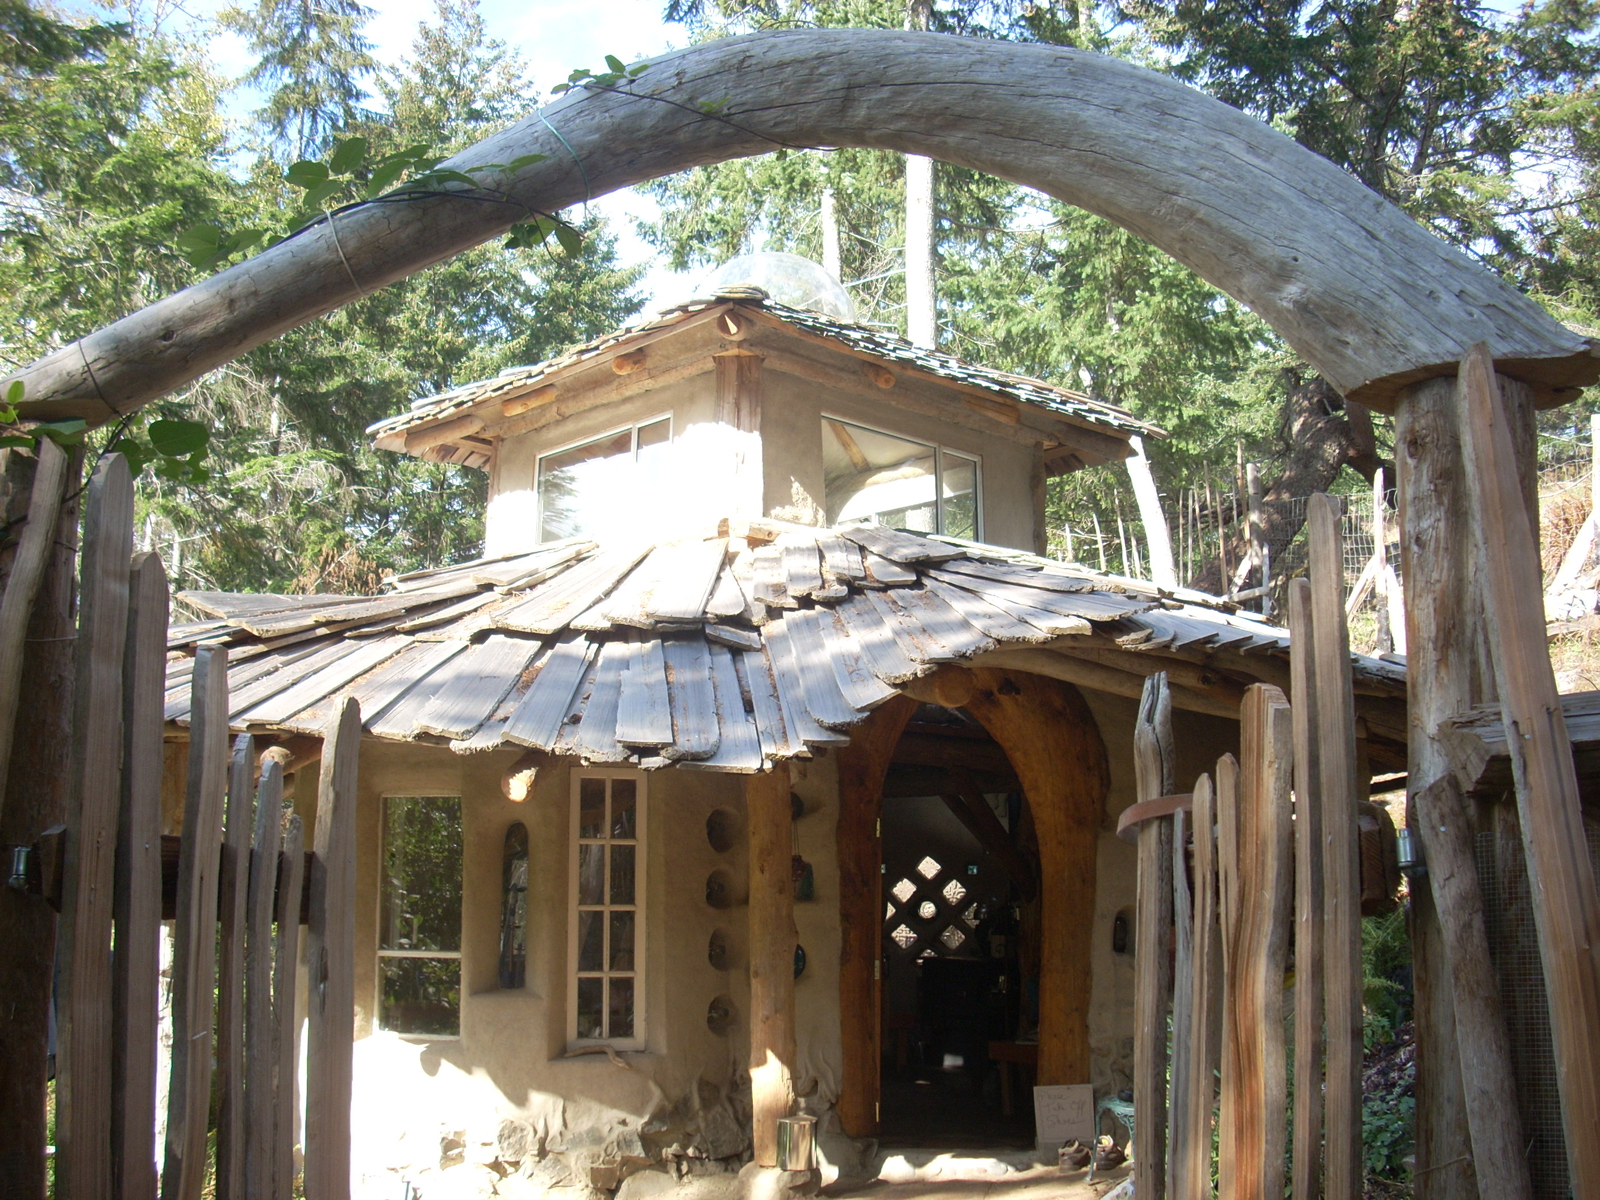 Exterior of cob house by Mud Girls